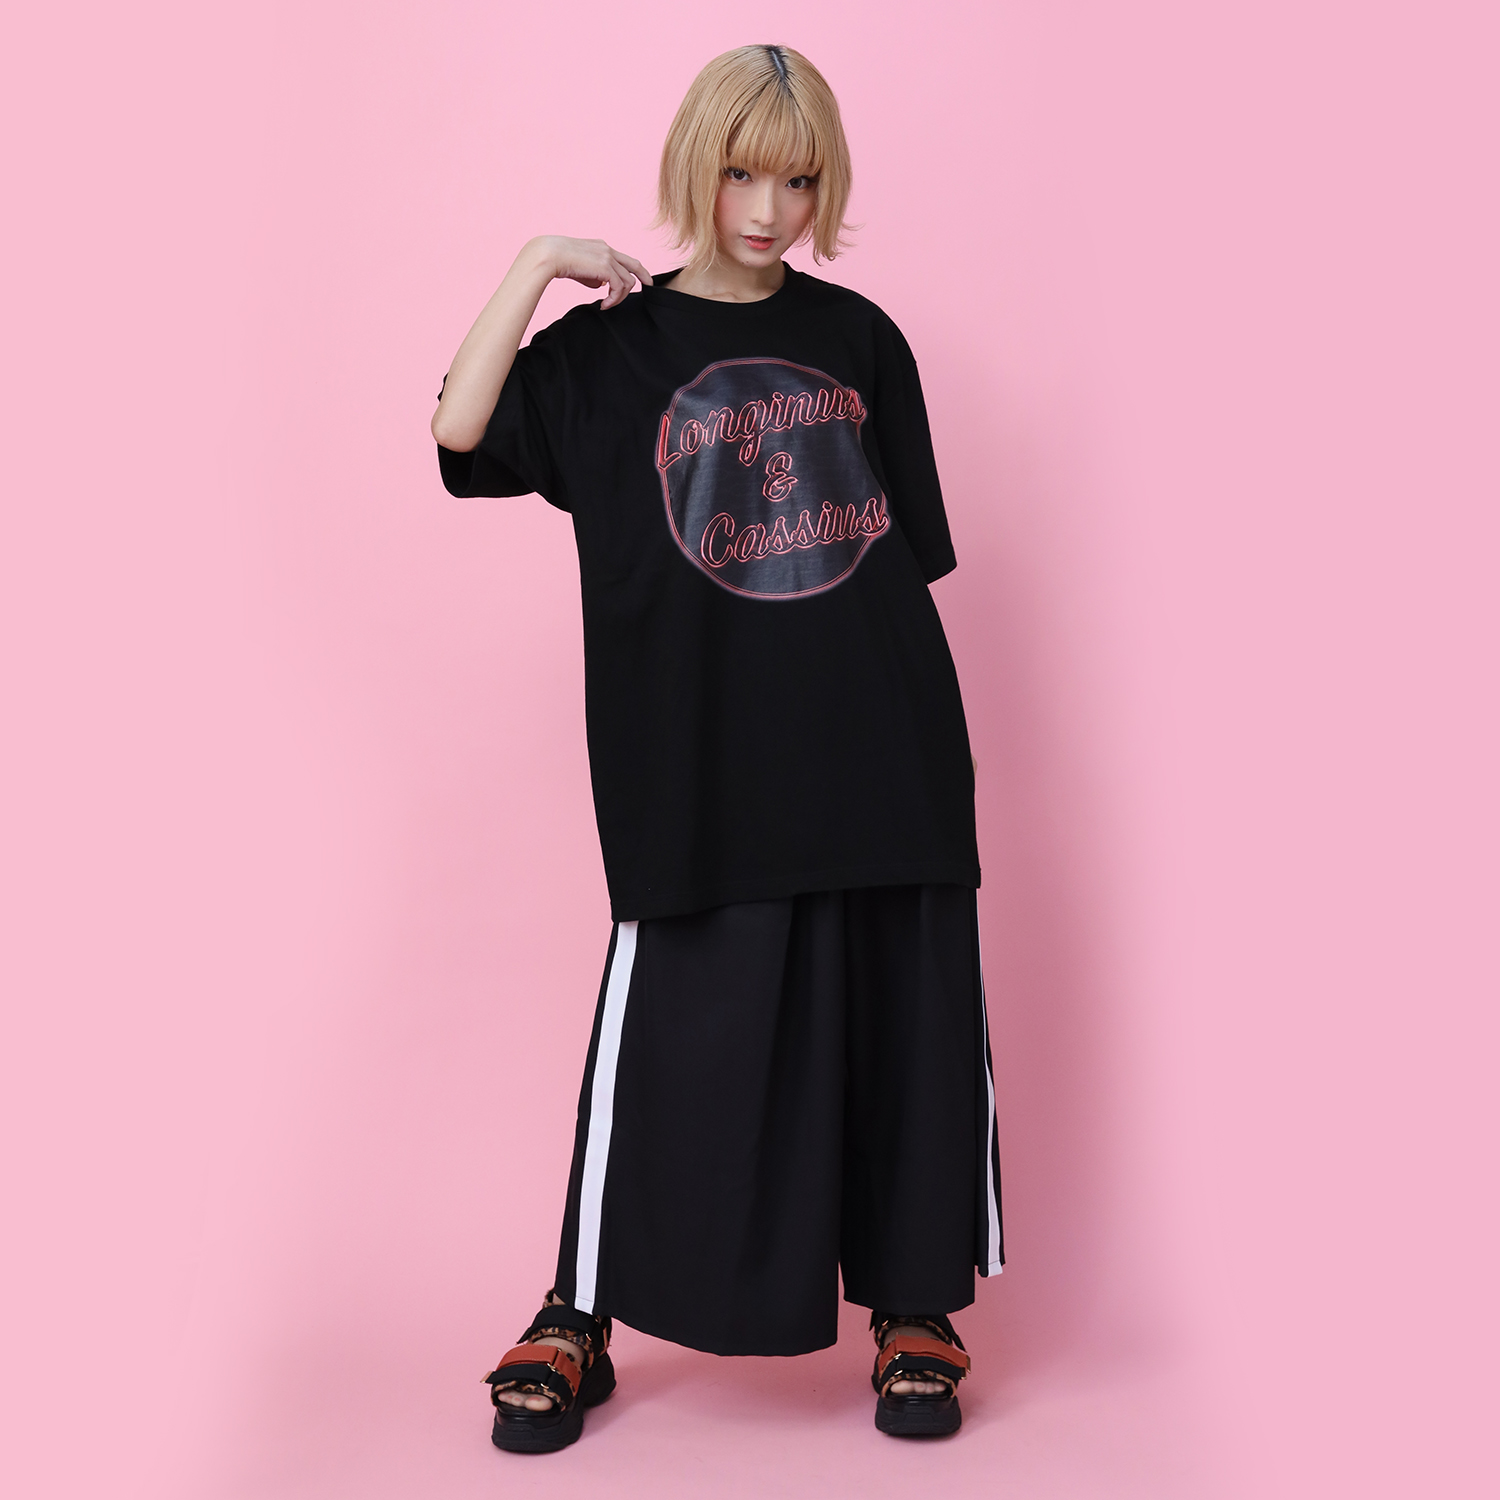 Longinus & Cassius Neon Sign T-Shirt (BLACK× RED)